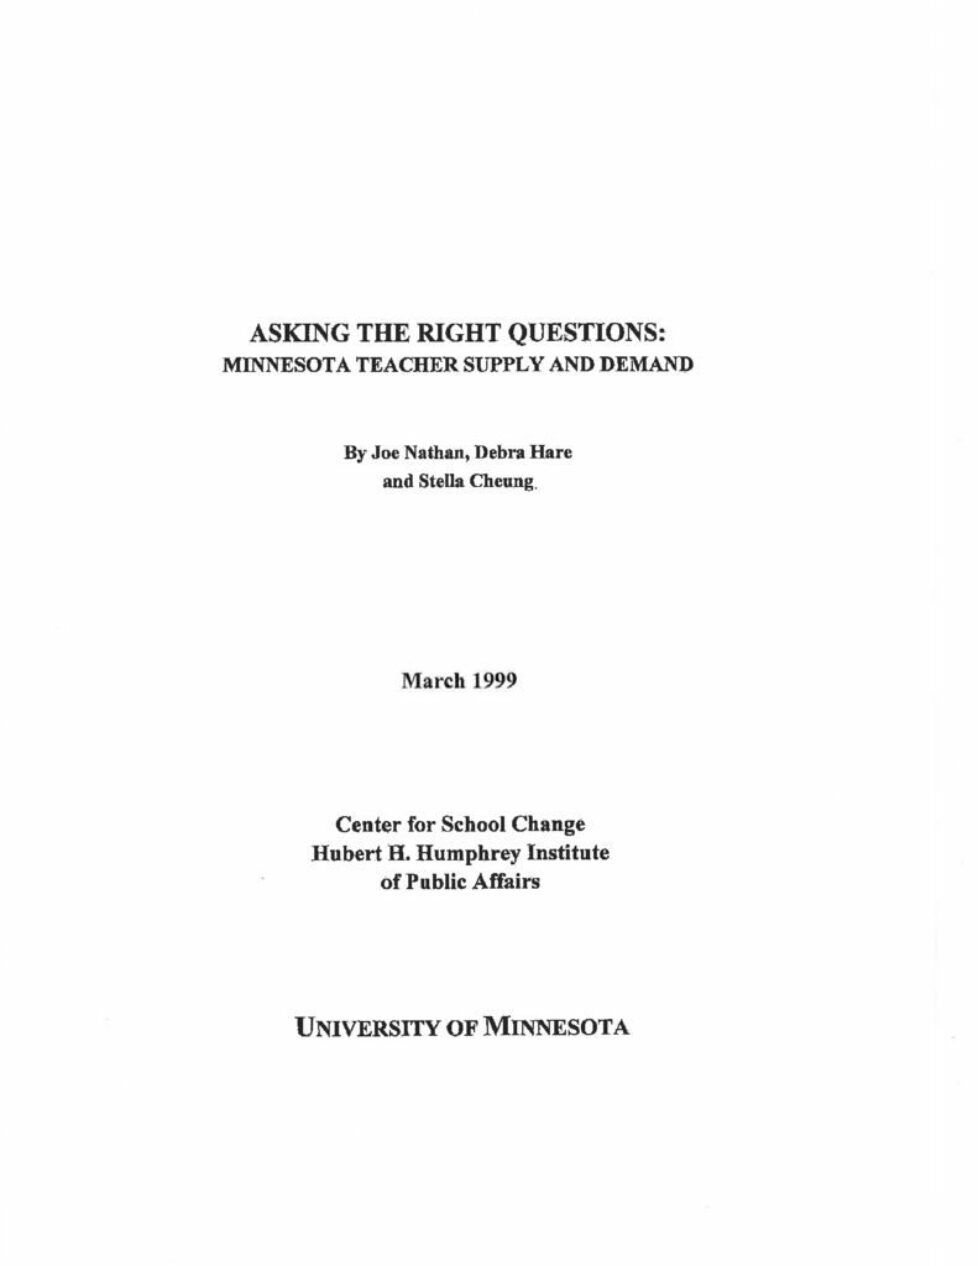 thumbnail of Asking The Right Questions- Minnesota Teacher Supply and Demand